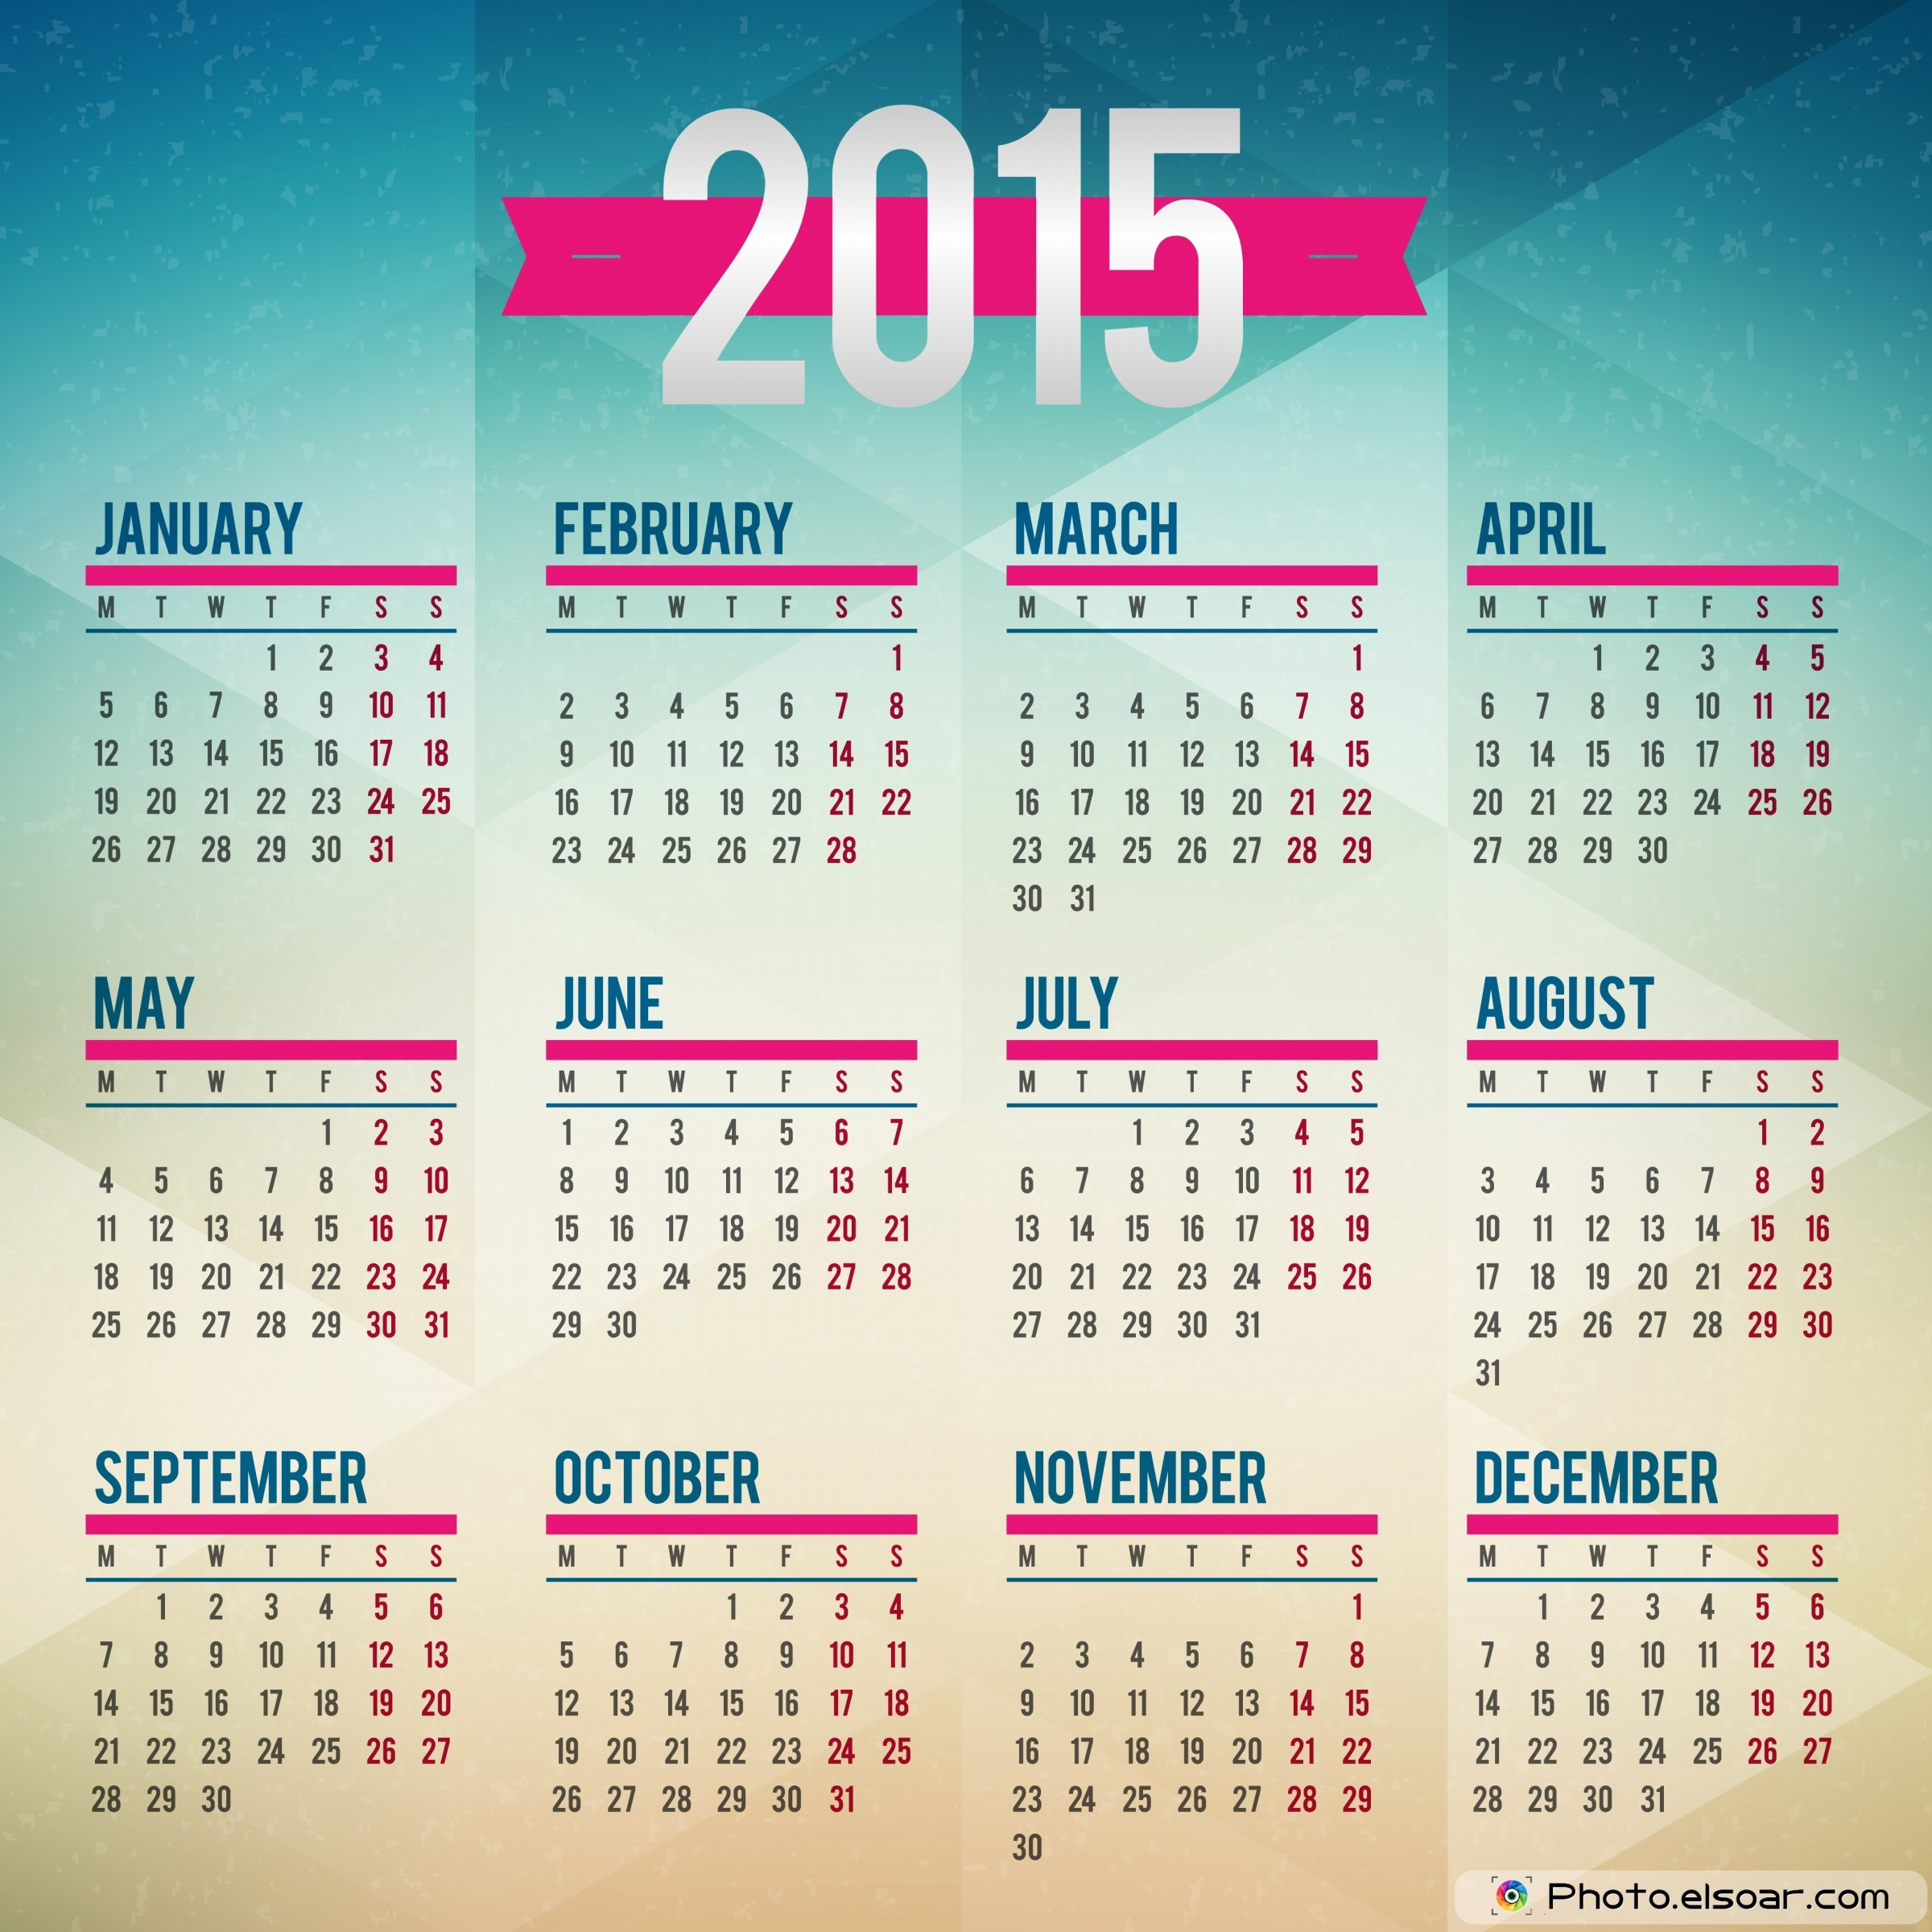 15 2015 Calendar Printable Design Images